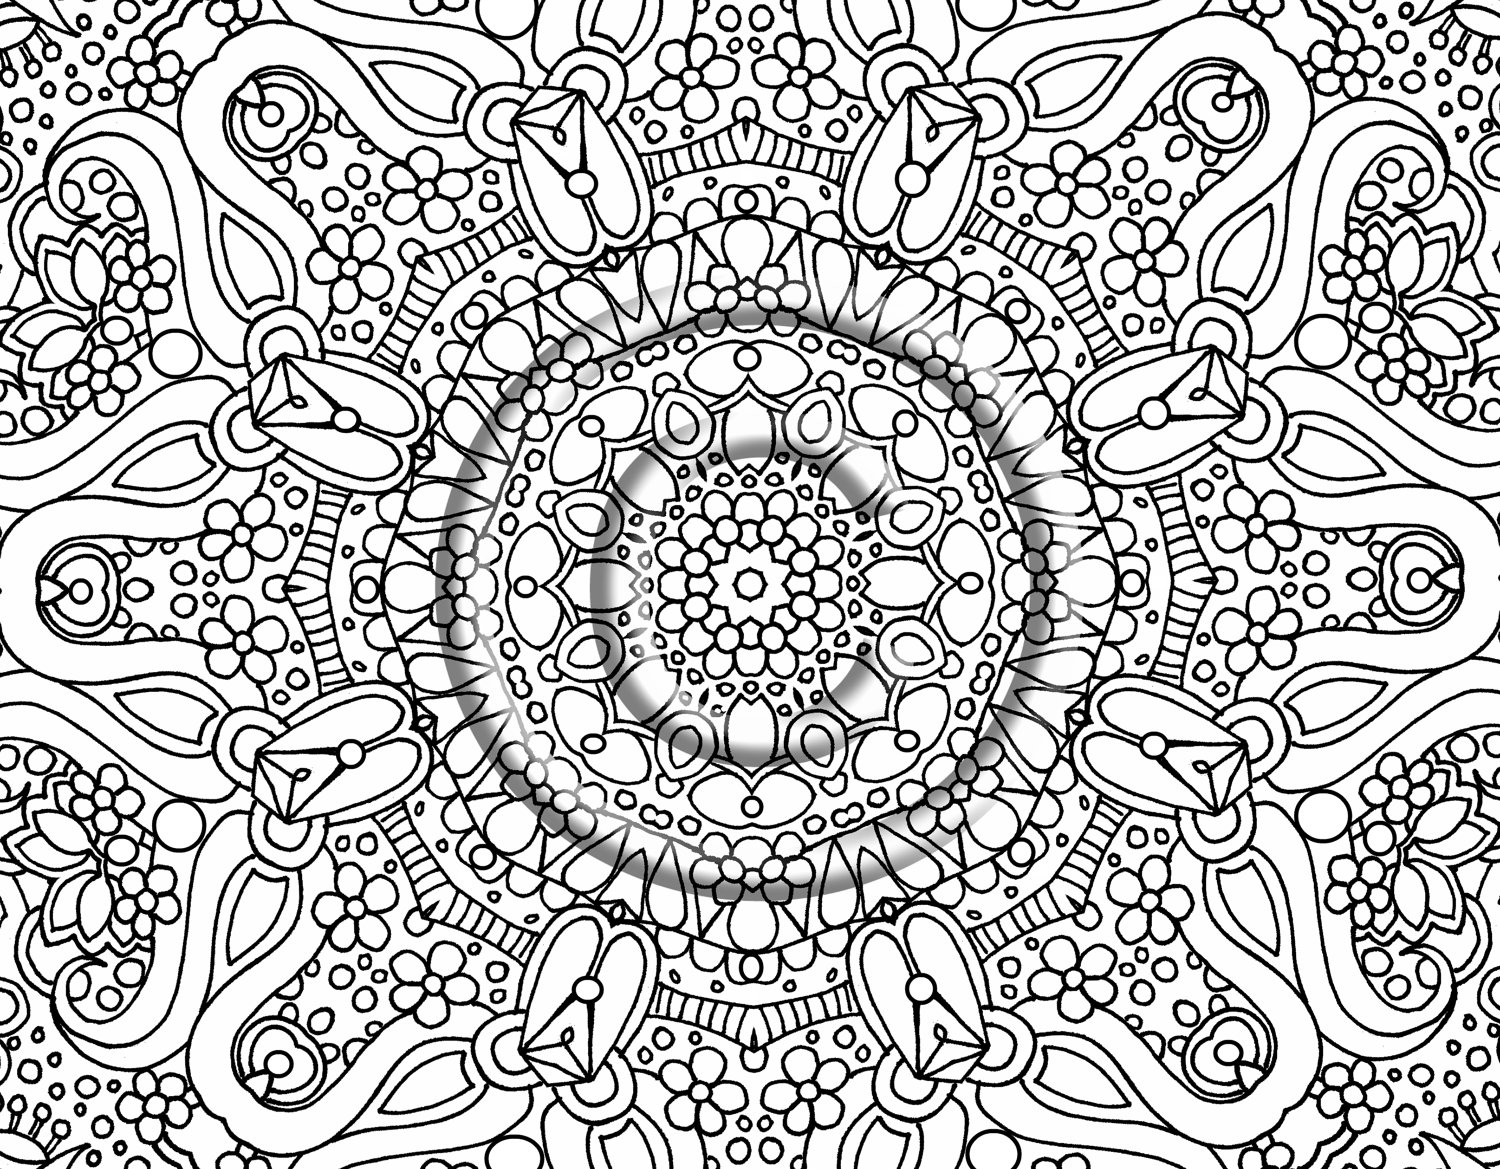 1500x1169 Awesome Abstract Art Coloring Pages For Adults Printable Free